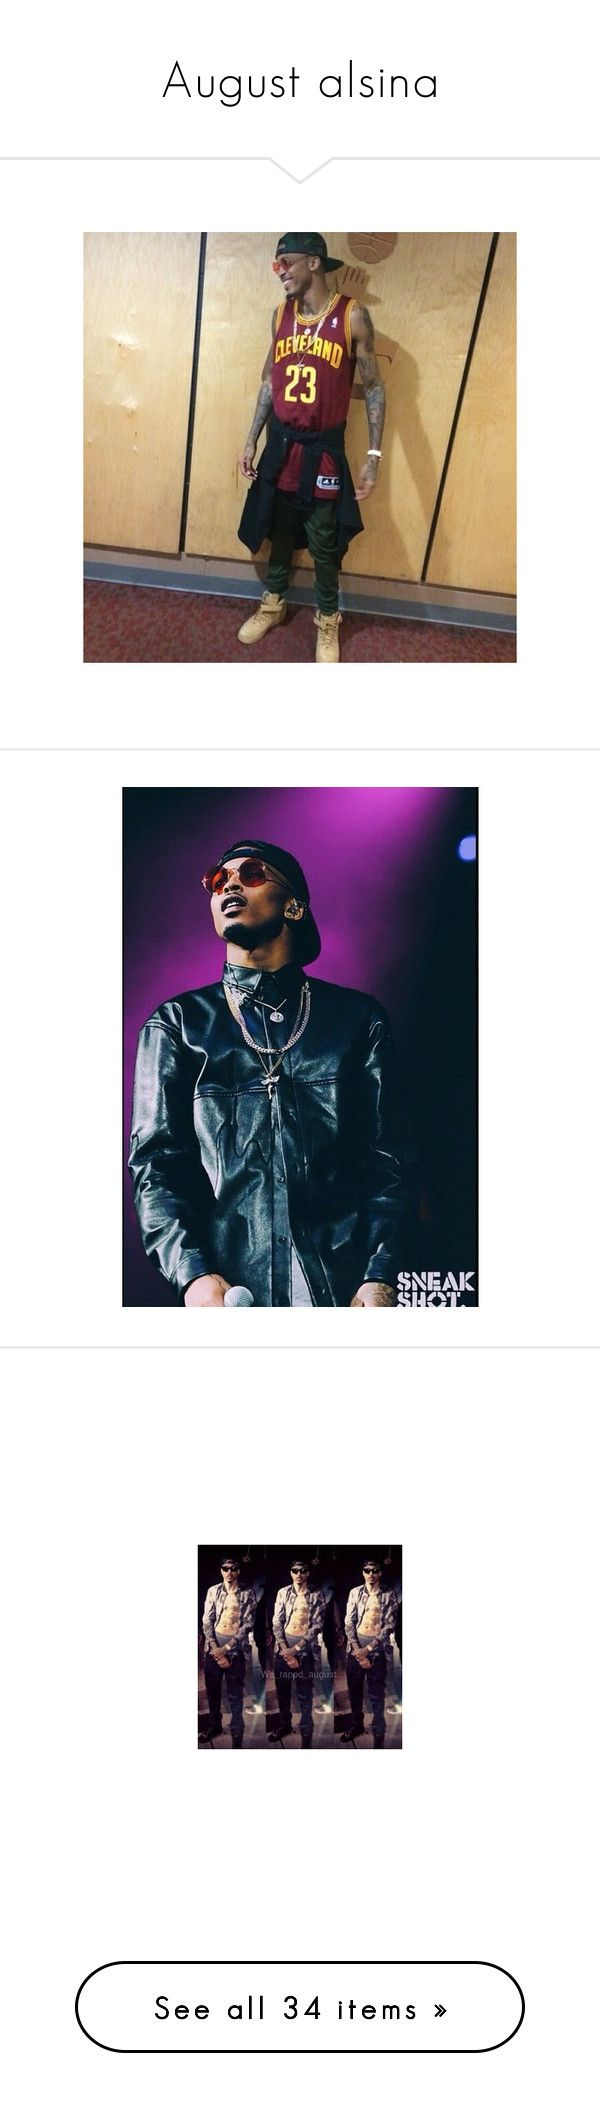 """August alsina"" by lexiesocrazy ❤ liked on Polyvore featuring august alsina, bae, boys, august, august., people, boy, pic, celebrities and pictures"